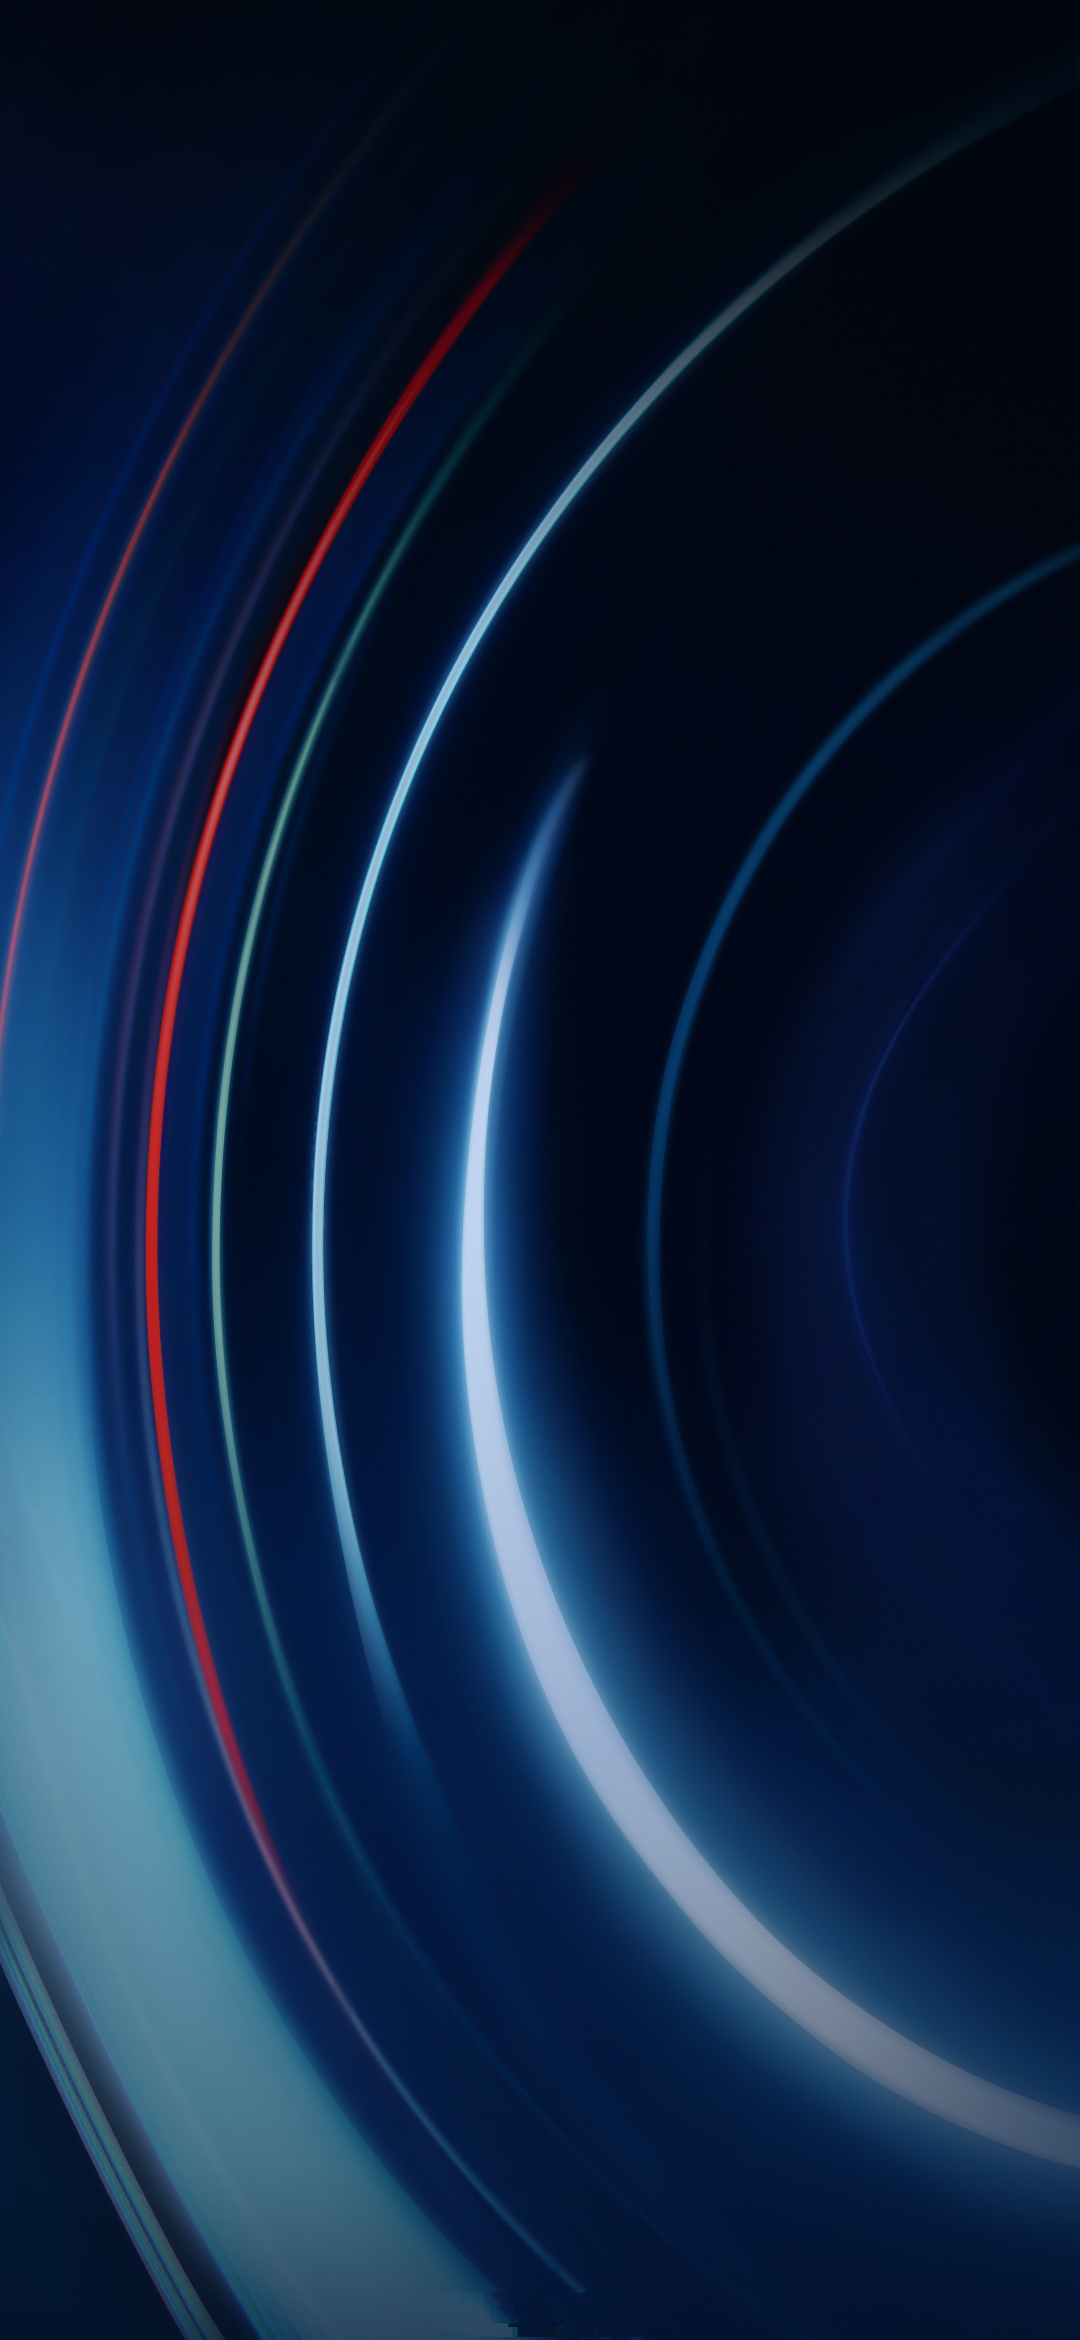 Vivo iQOO Stock Wallpaper 02   [1080x2340] 1080x2340